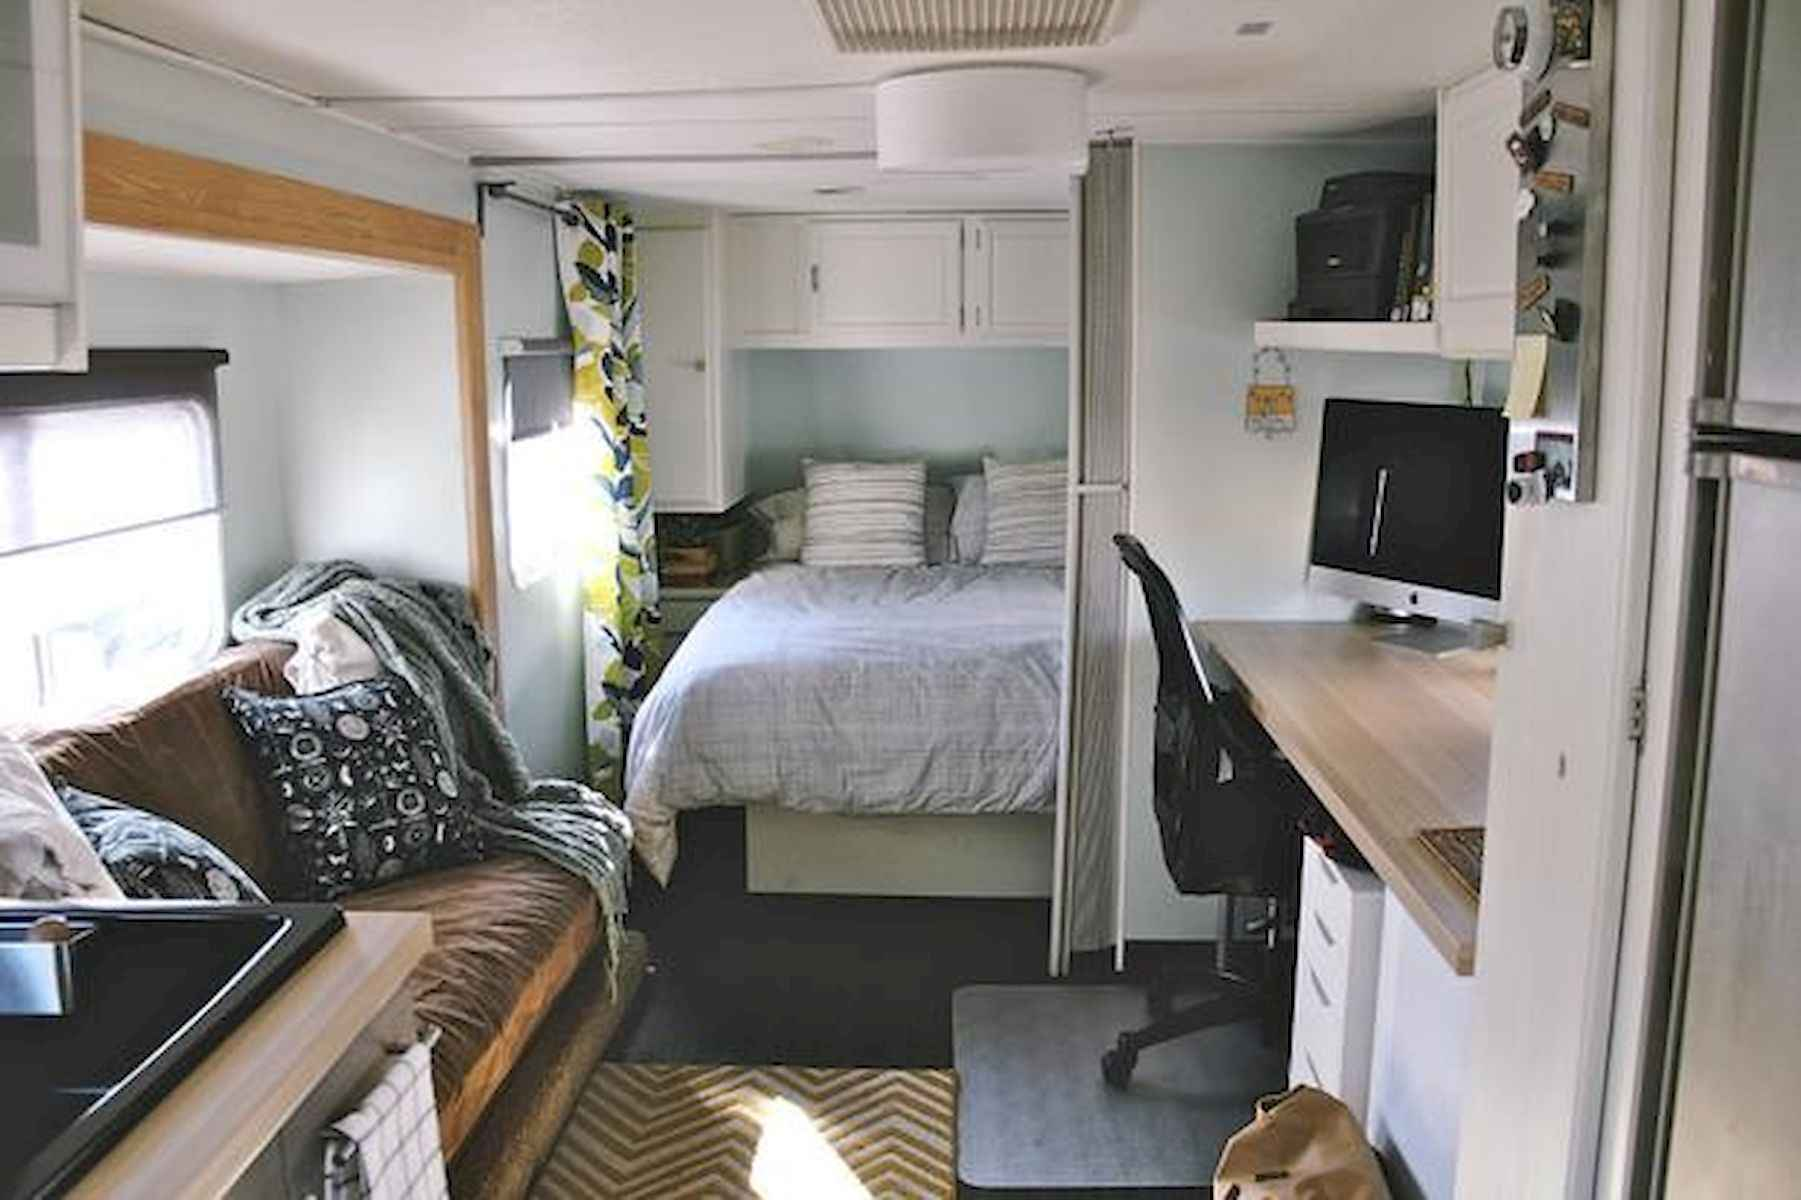 70 Stunning RV Living Camper Room Ideas Decorations Make Your Summer Awesome (22)